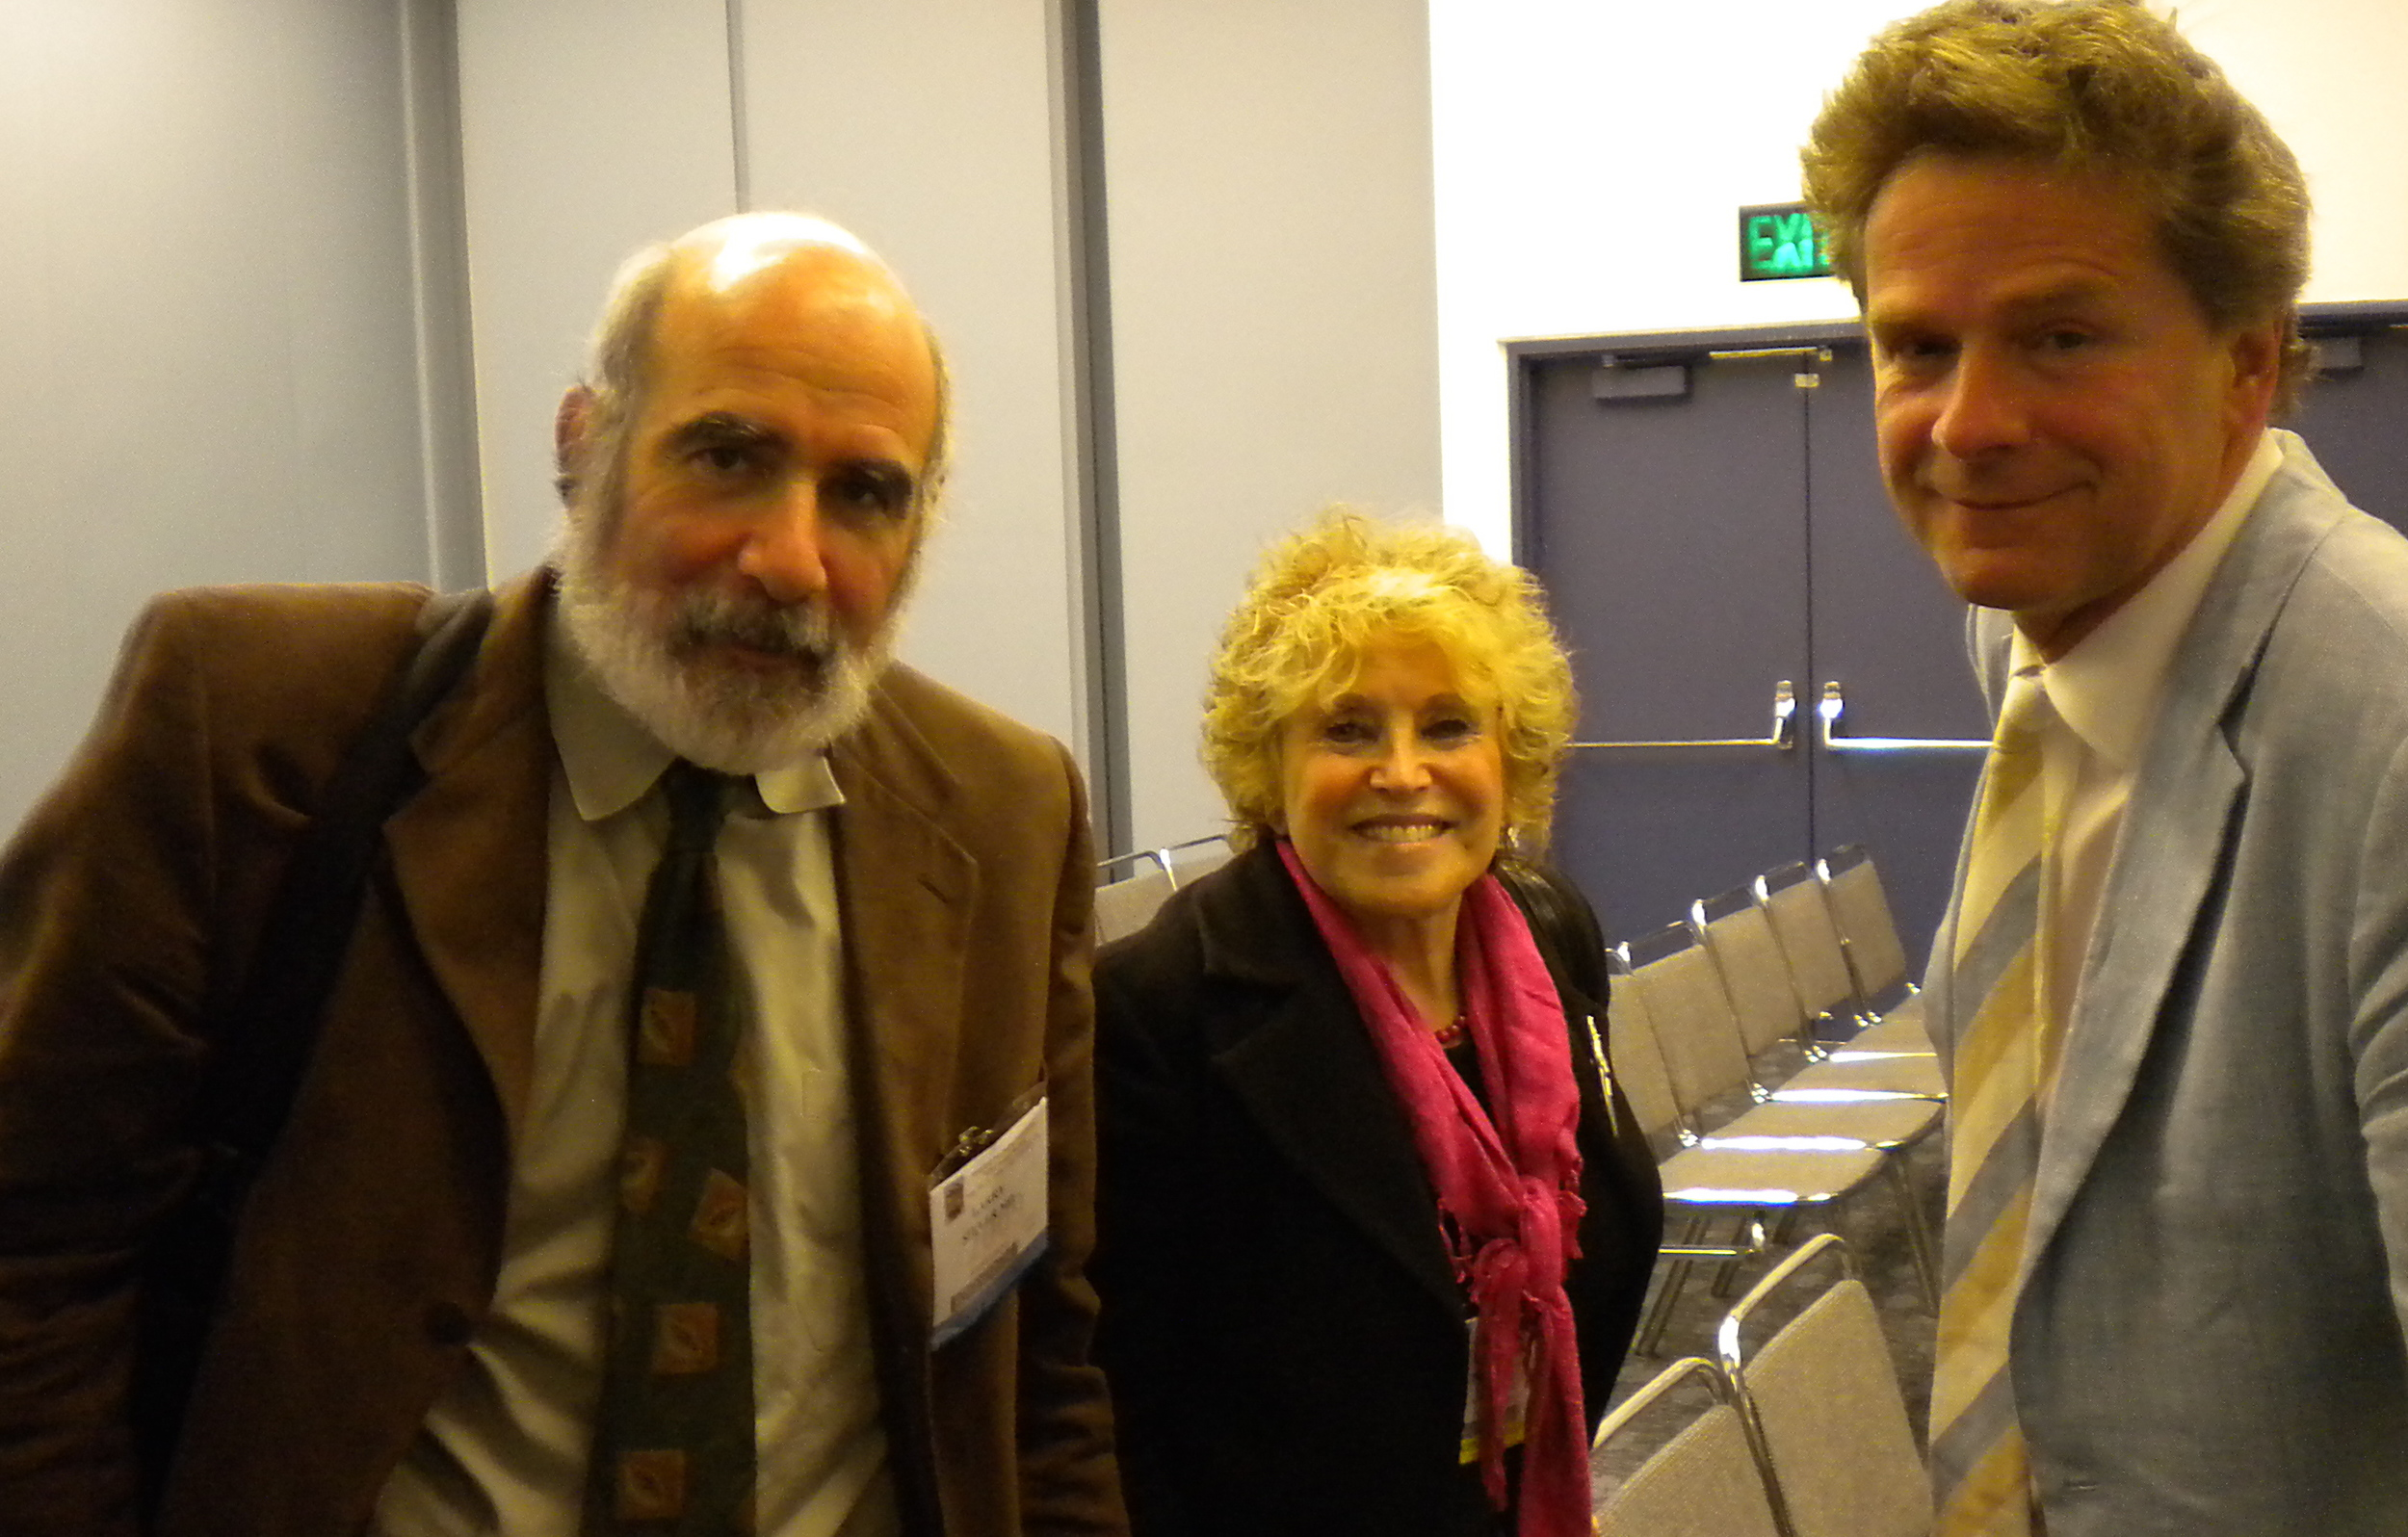 larry siever, valerie porr and martin bohus at the apa, 2009